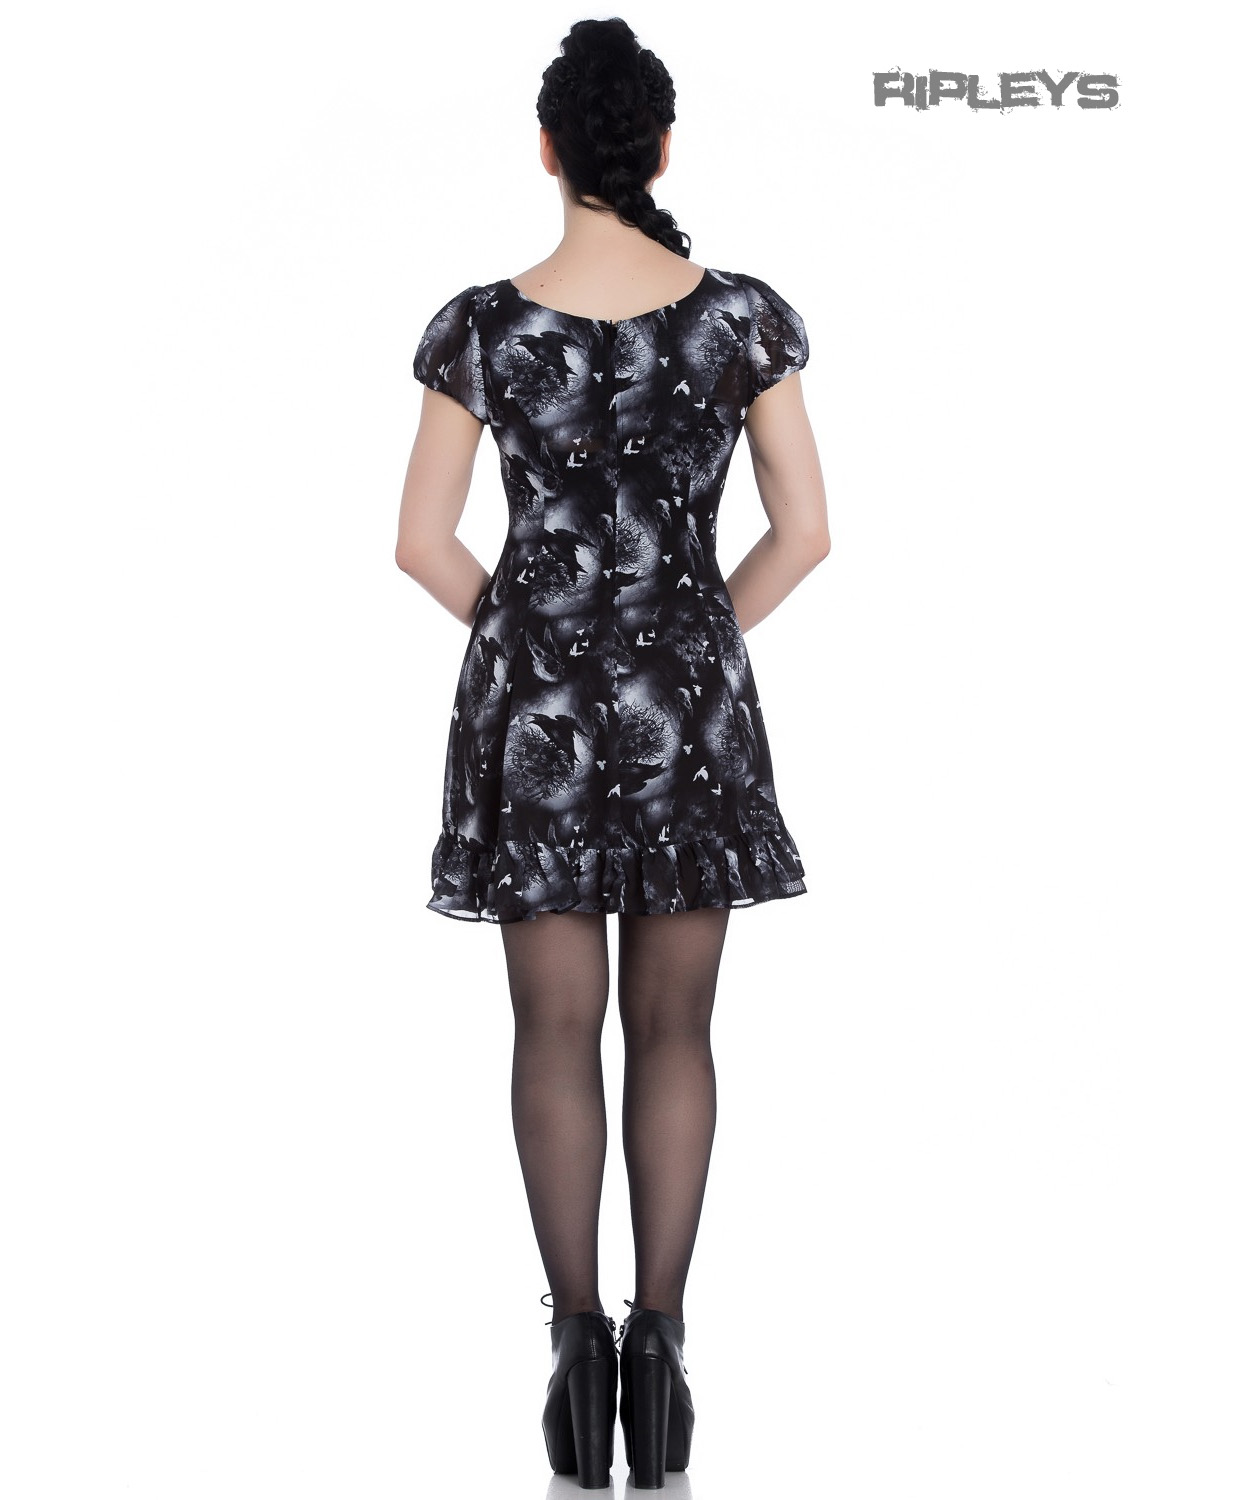 Hell-Bunny-Alchemy-Gothic-Black-Skater-Mini-Dress-ASH-Crows-Skulls-All-Sizes thumbnail 32